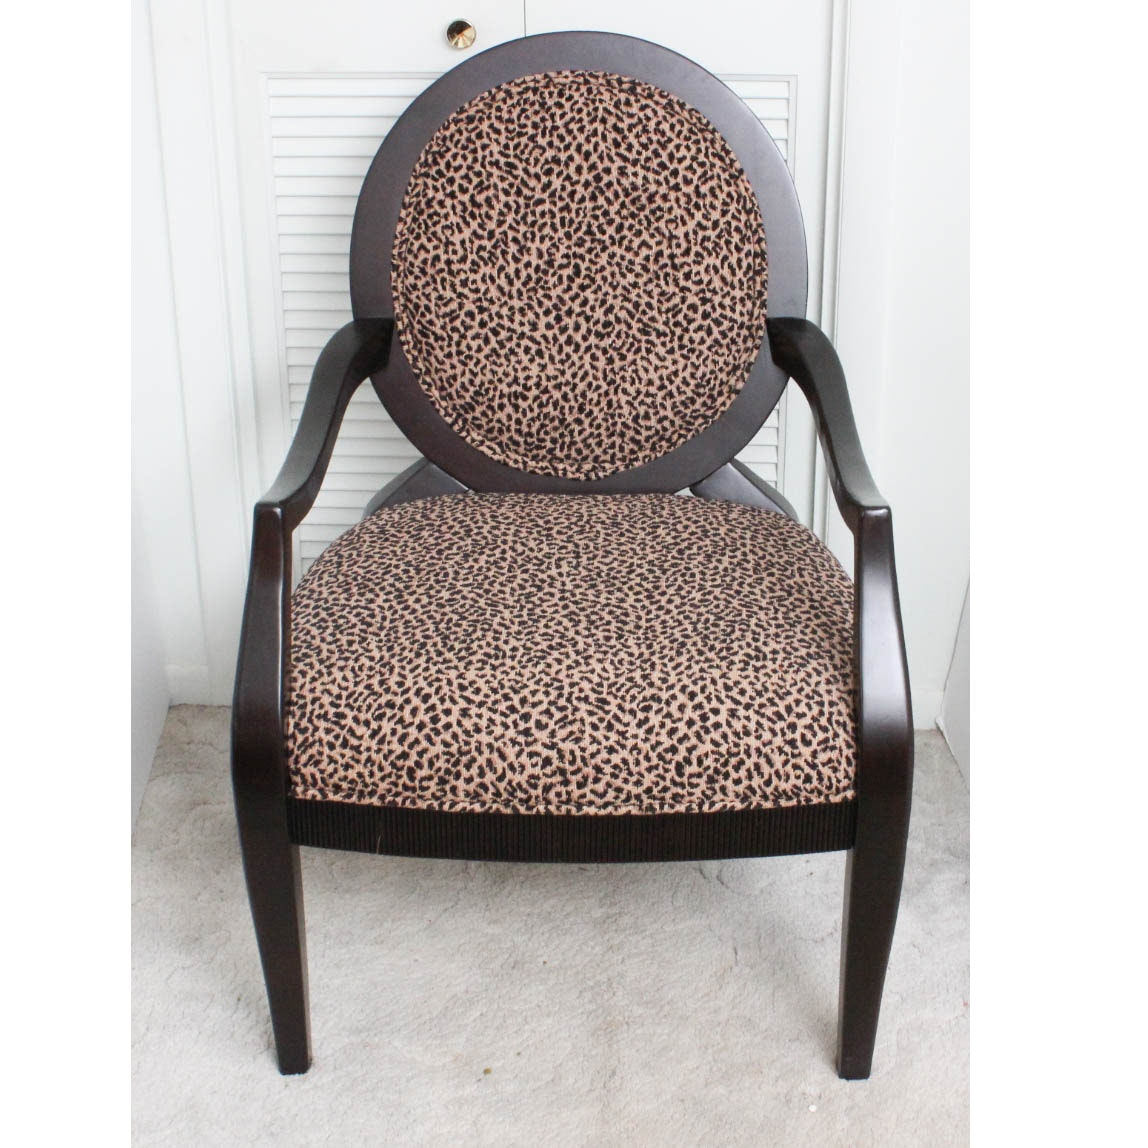 Charmant Ashley Furniture Leopard Print Occasional Chair ...